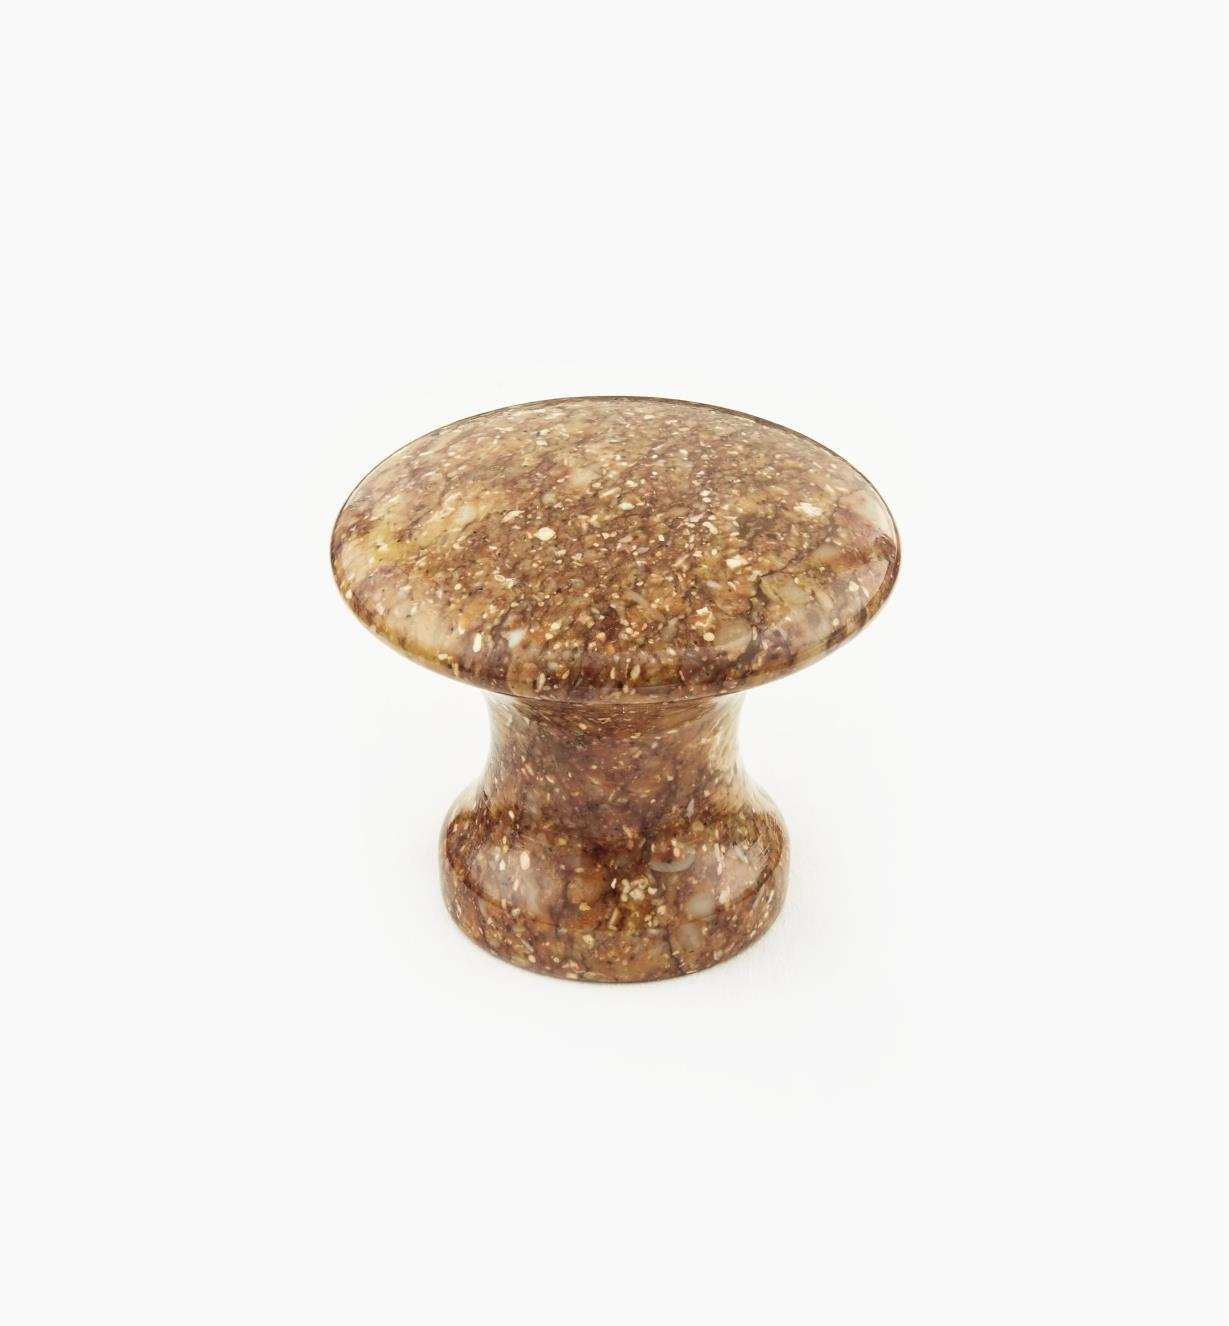 00W4065 - Brown Marble Knob, 35mm x 30mm